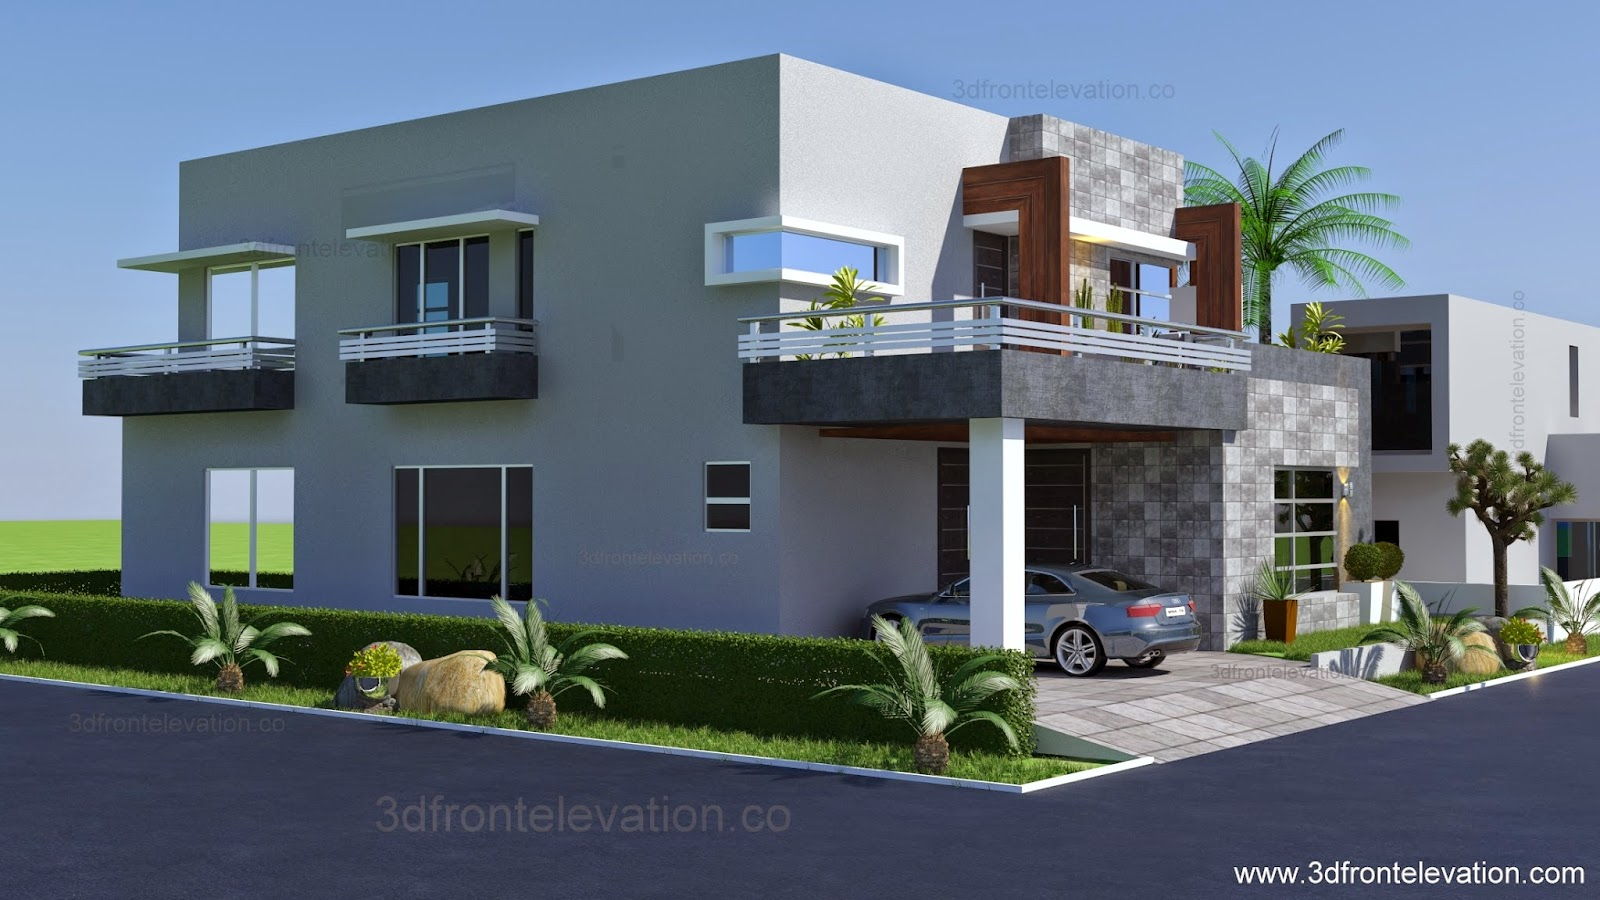 D Front Elevation Maker : D front elevation kanal contemporary house plan